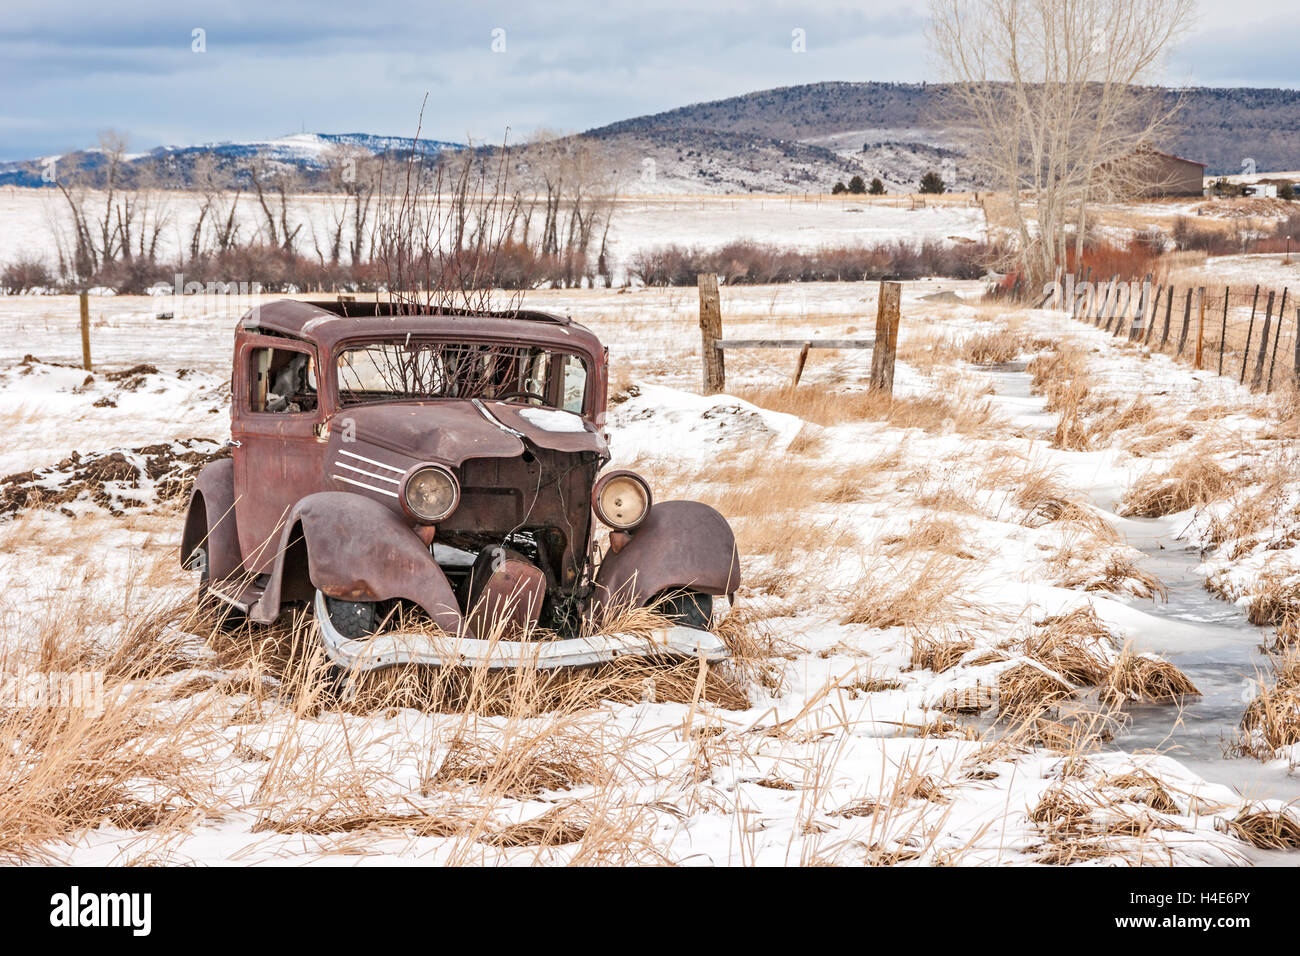 Rusty, dilapidated, abandoned vehicle in a field in rural America on a winter day - Stock Image